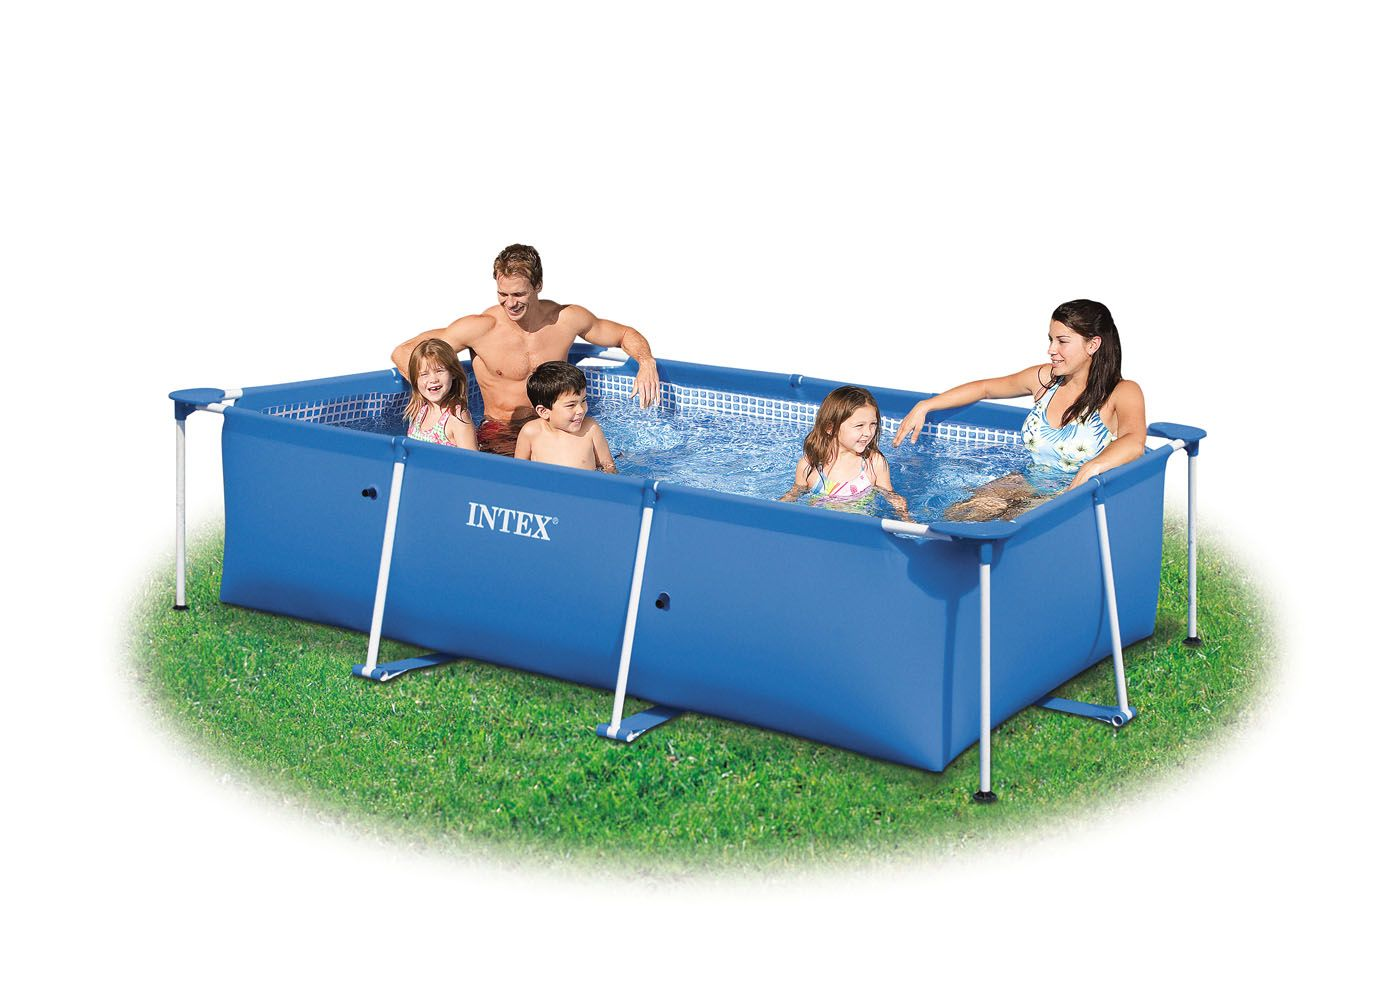 Intex Piscinas Acessorios Piscine Rectangulaire Hors Sol Intex Intex Piscine Co